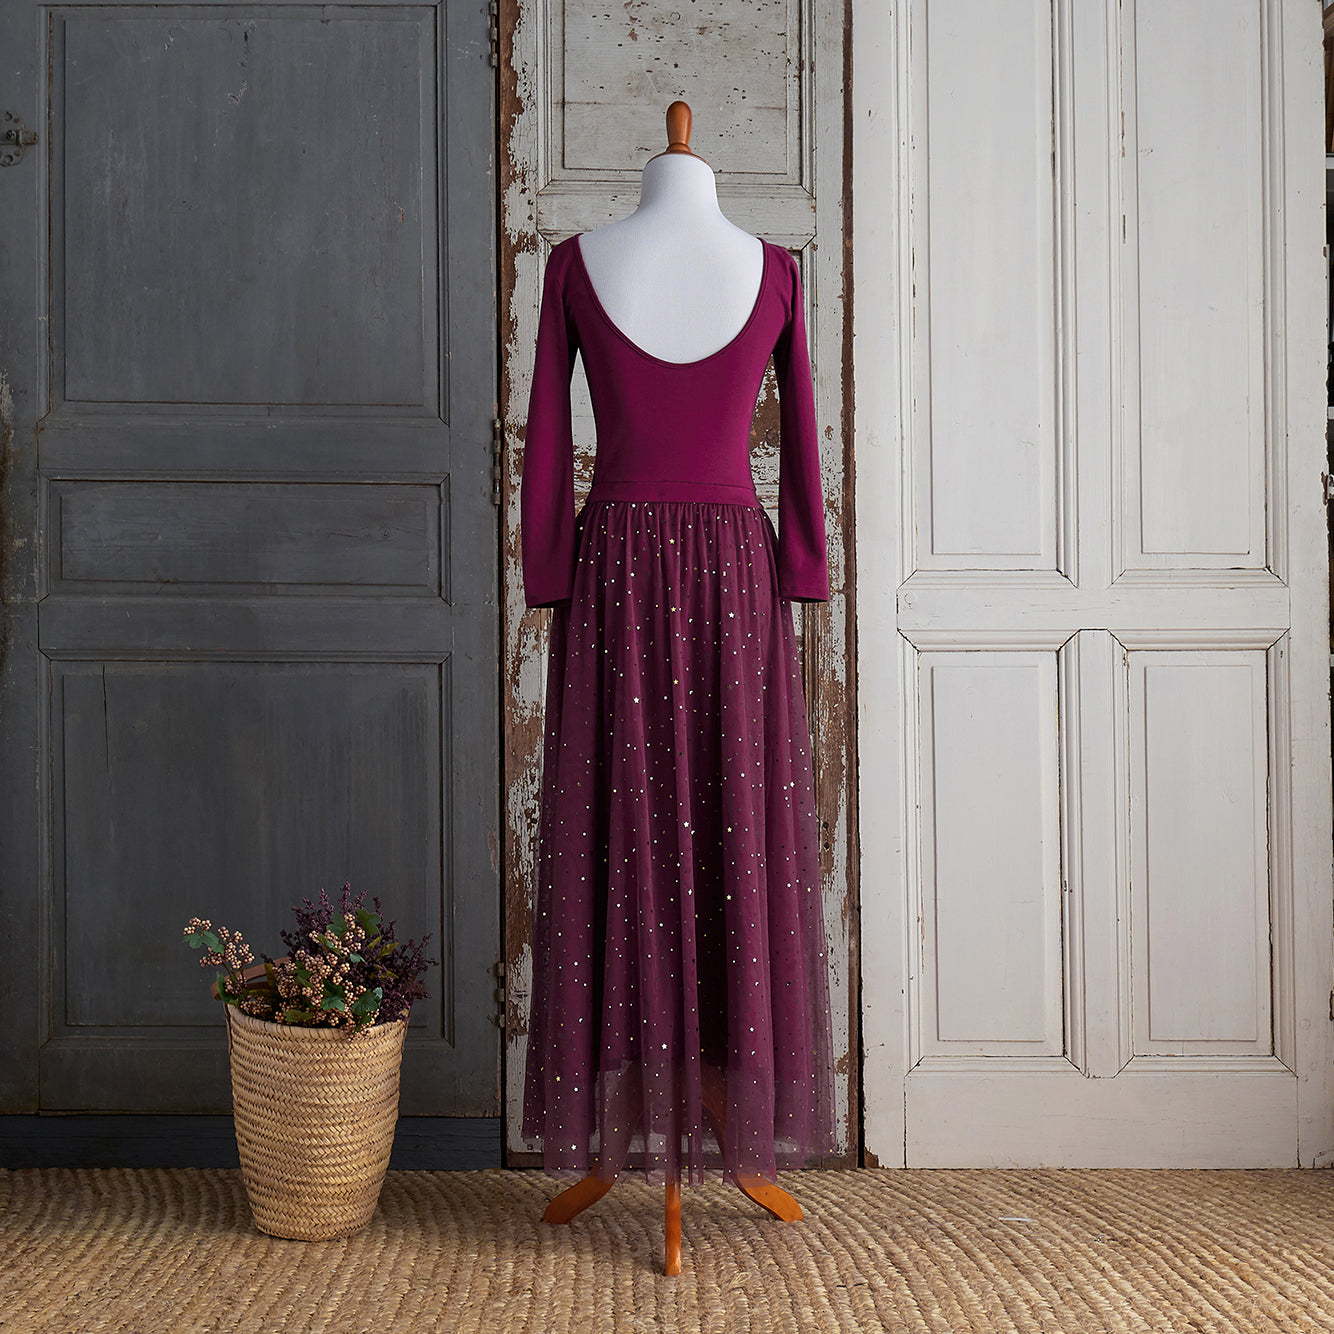 Ballerina Dress (Women) - Raspberry Jam (FINAL SALE - Sizes XS & M Only)